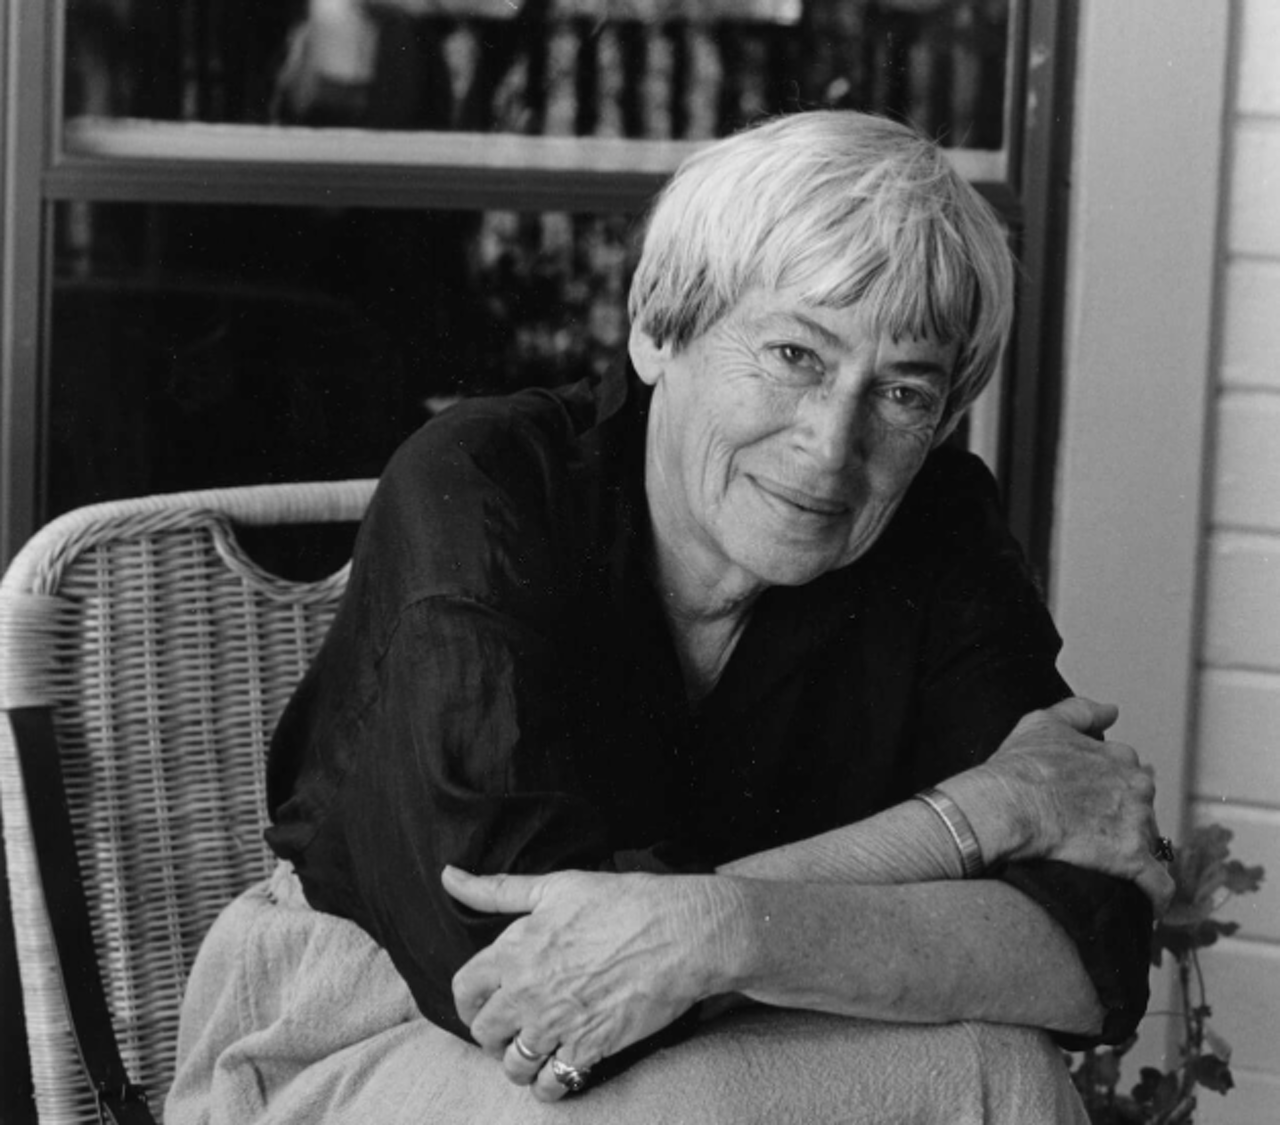 We should all be reading more Ursula Le Guin